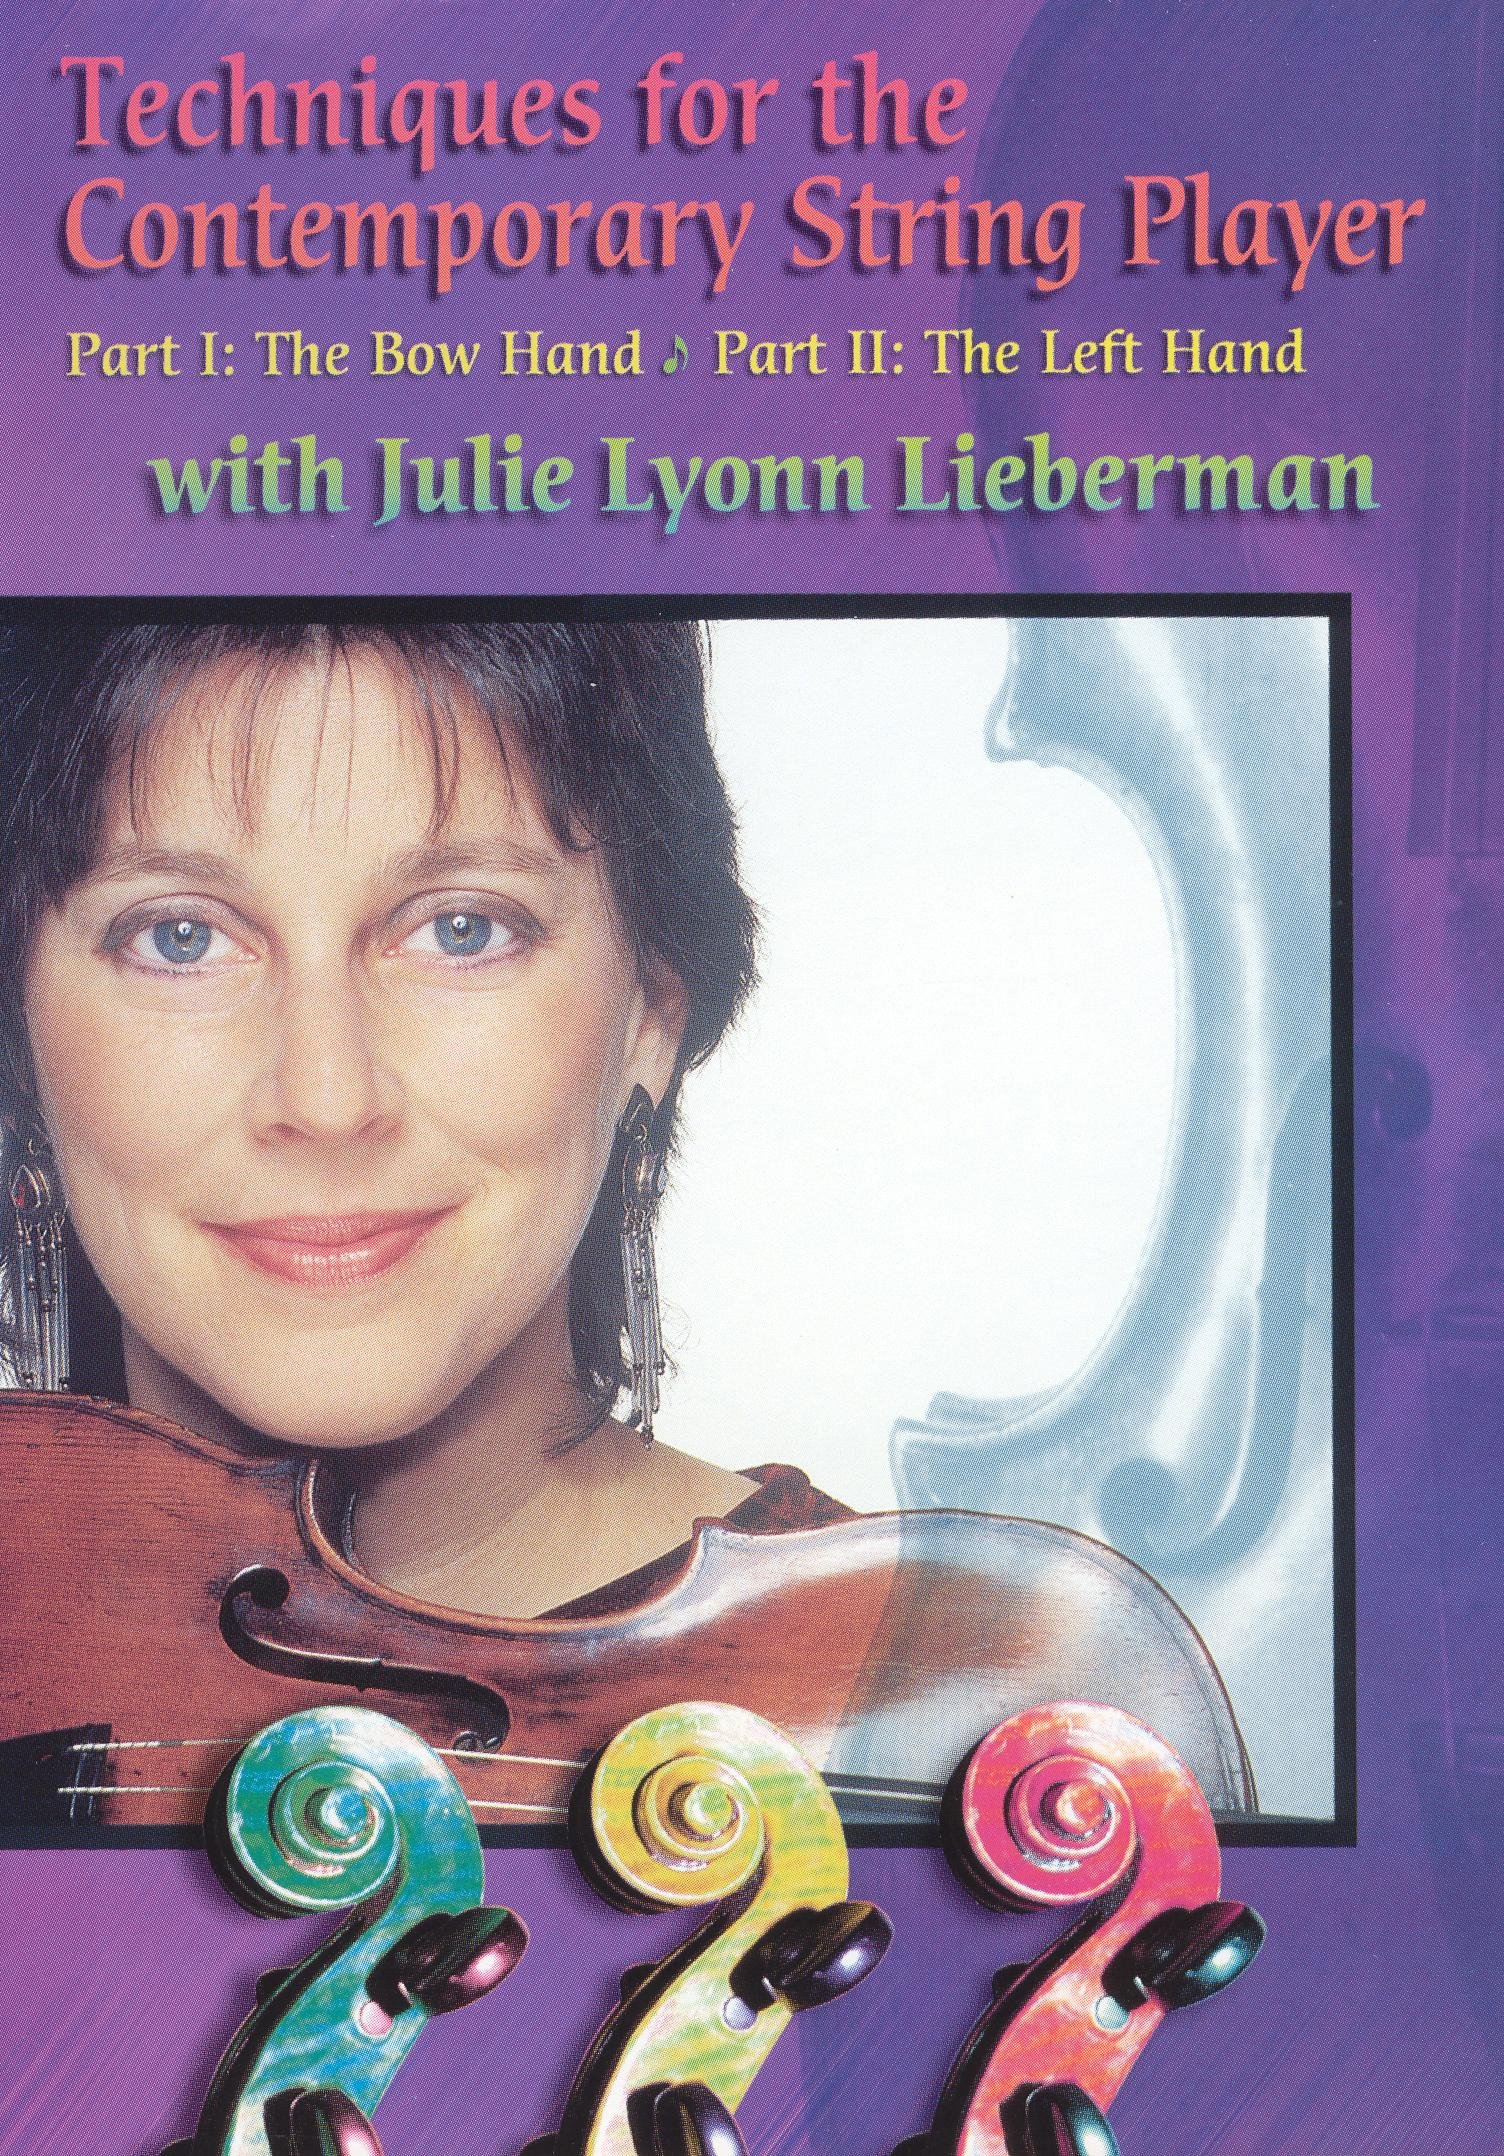 Julie Lyonn Lieberman: Techniques for the Contemporary String Player [Ins